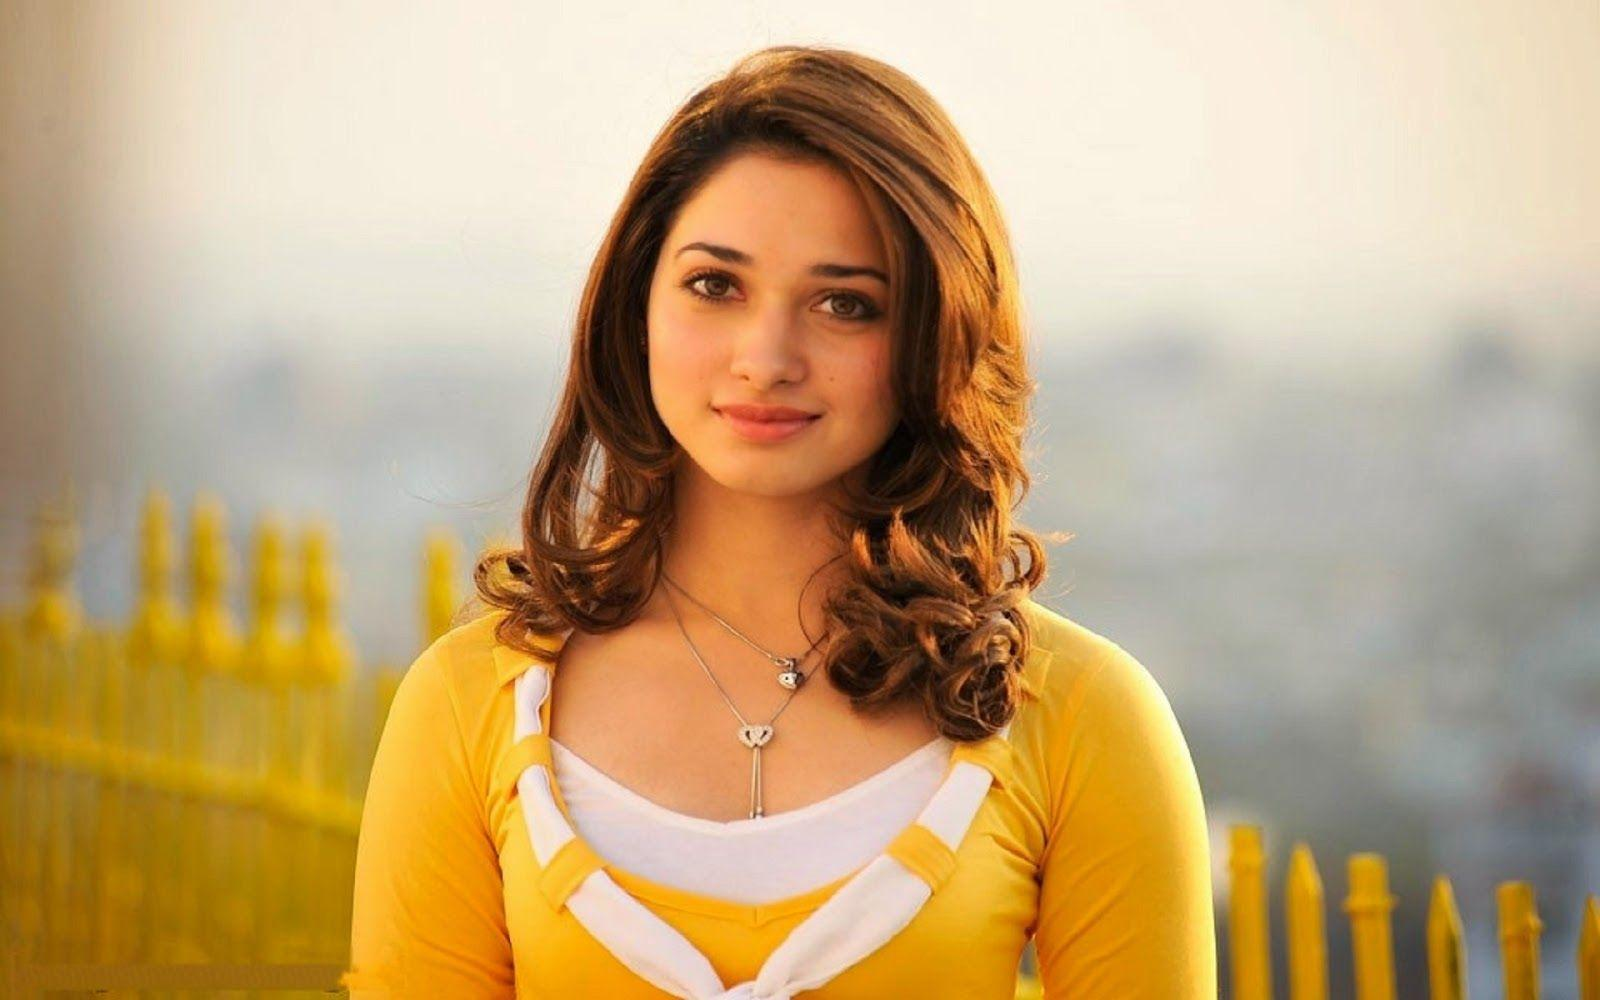 Tamil Actress Hd Wallpapers 1080p Wallpaper Cave